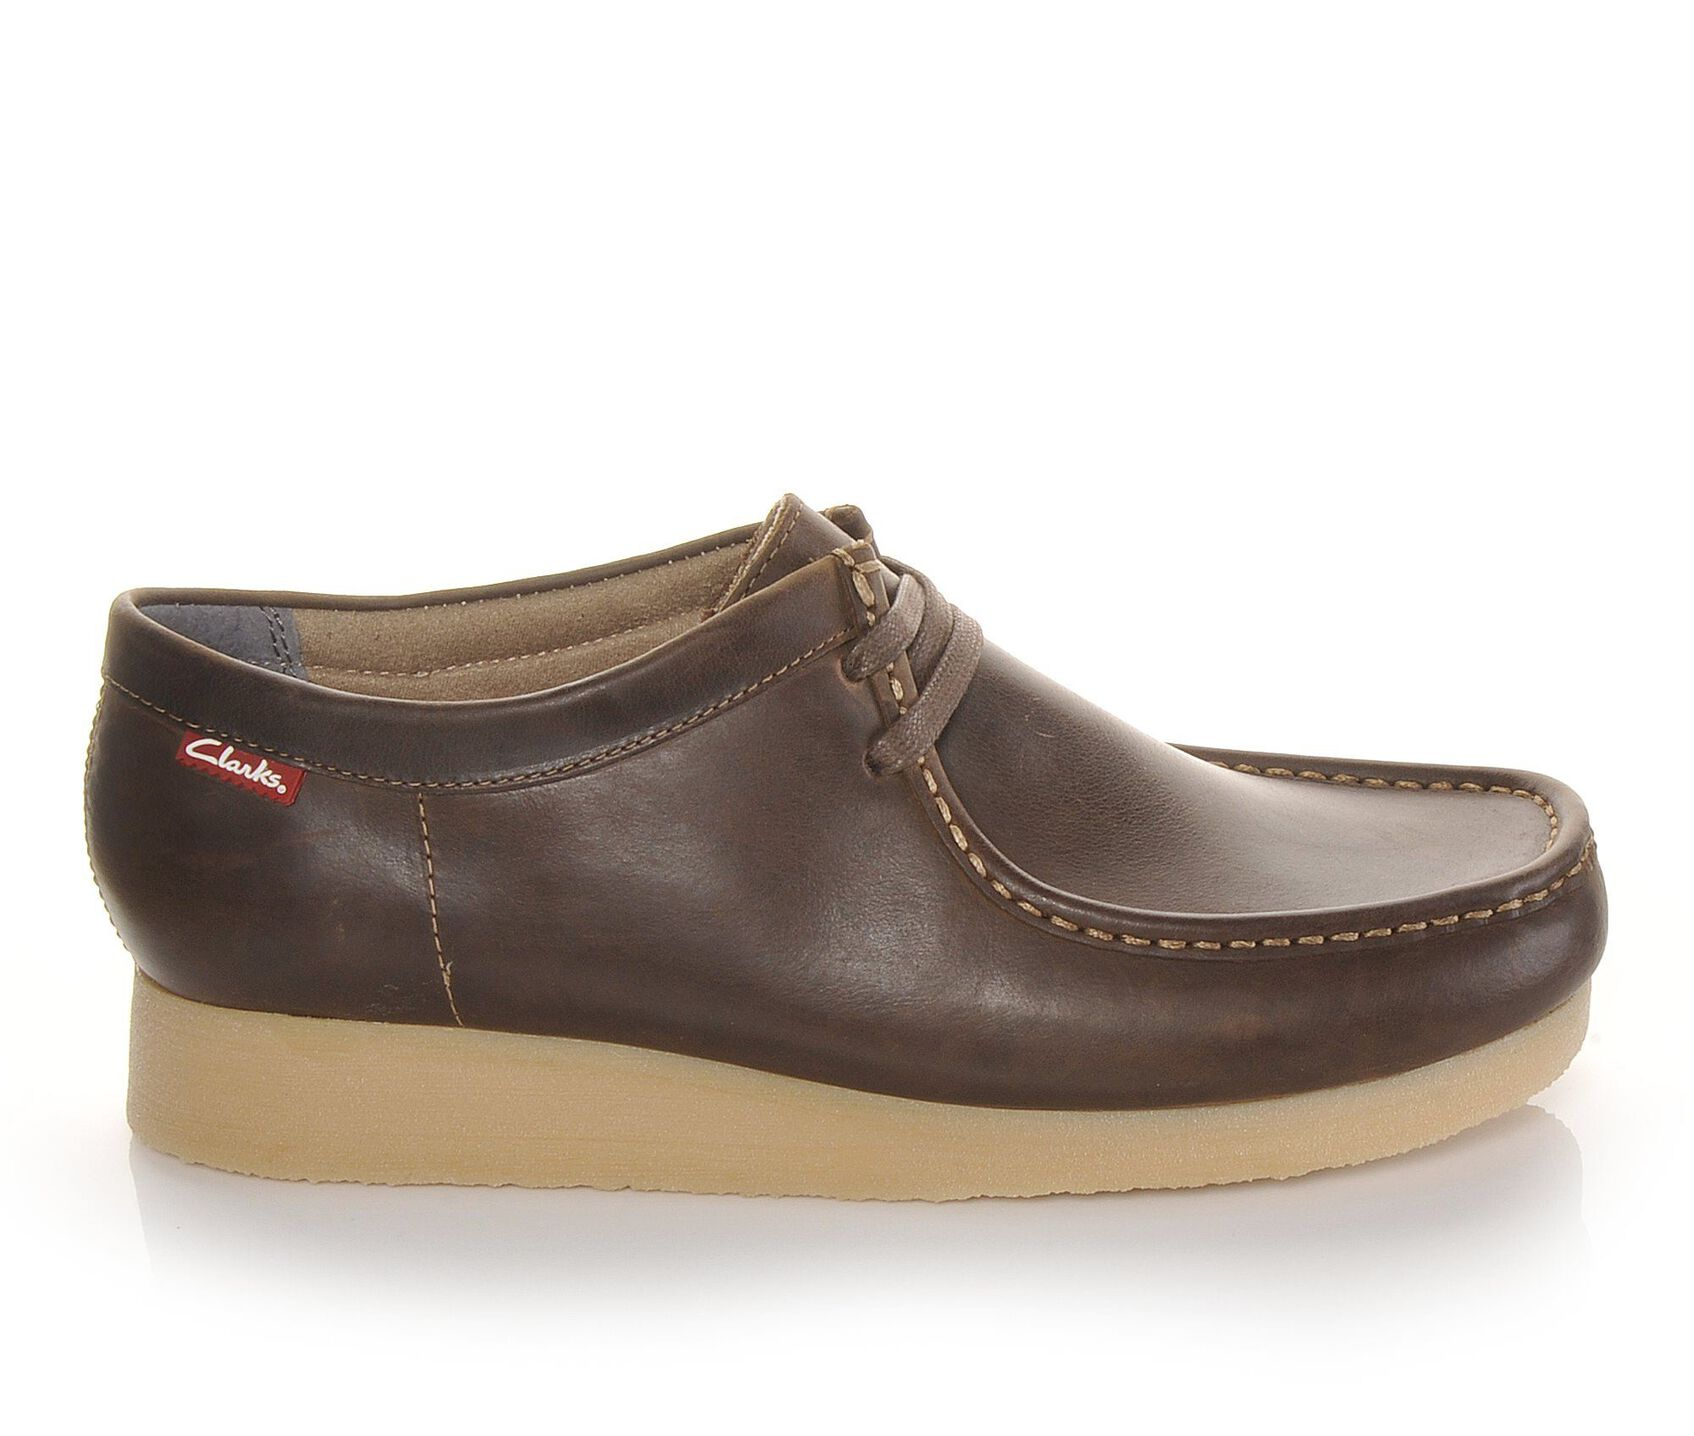 From the docks to downtown, these CLOUDSTEPPERS(TM) boat shoes with a mesh design are sure to please both your sense of style and your feet. From Clarks Footwear.